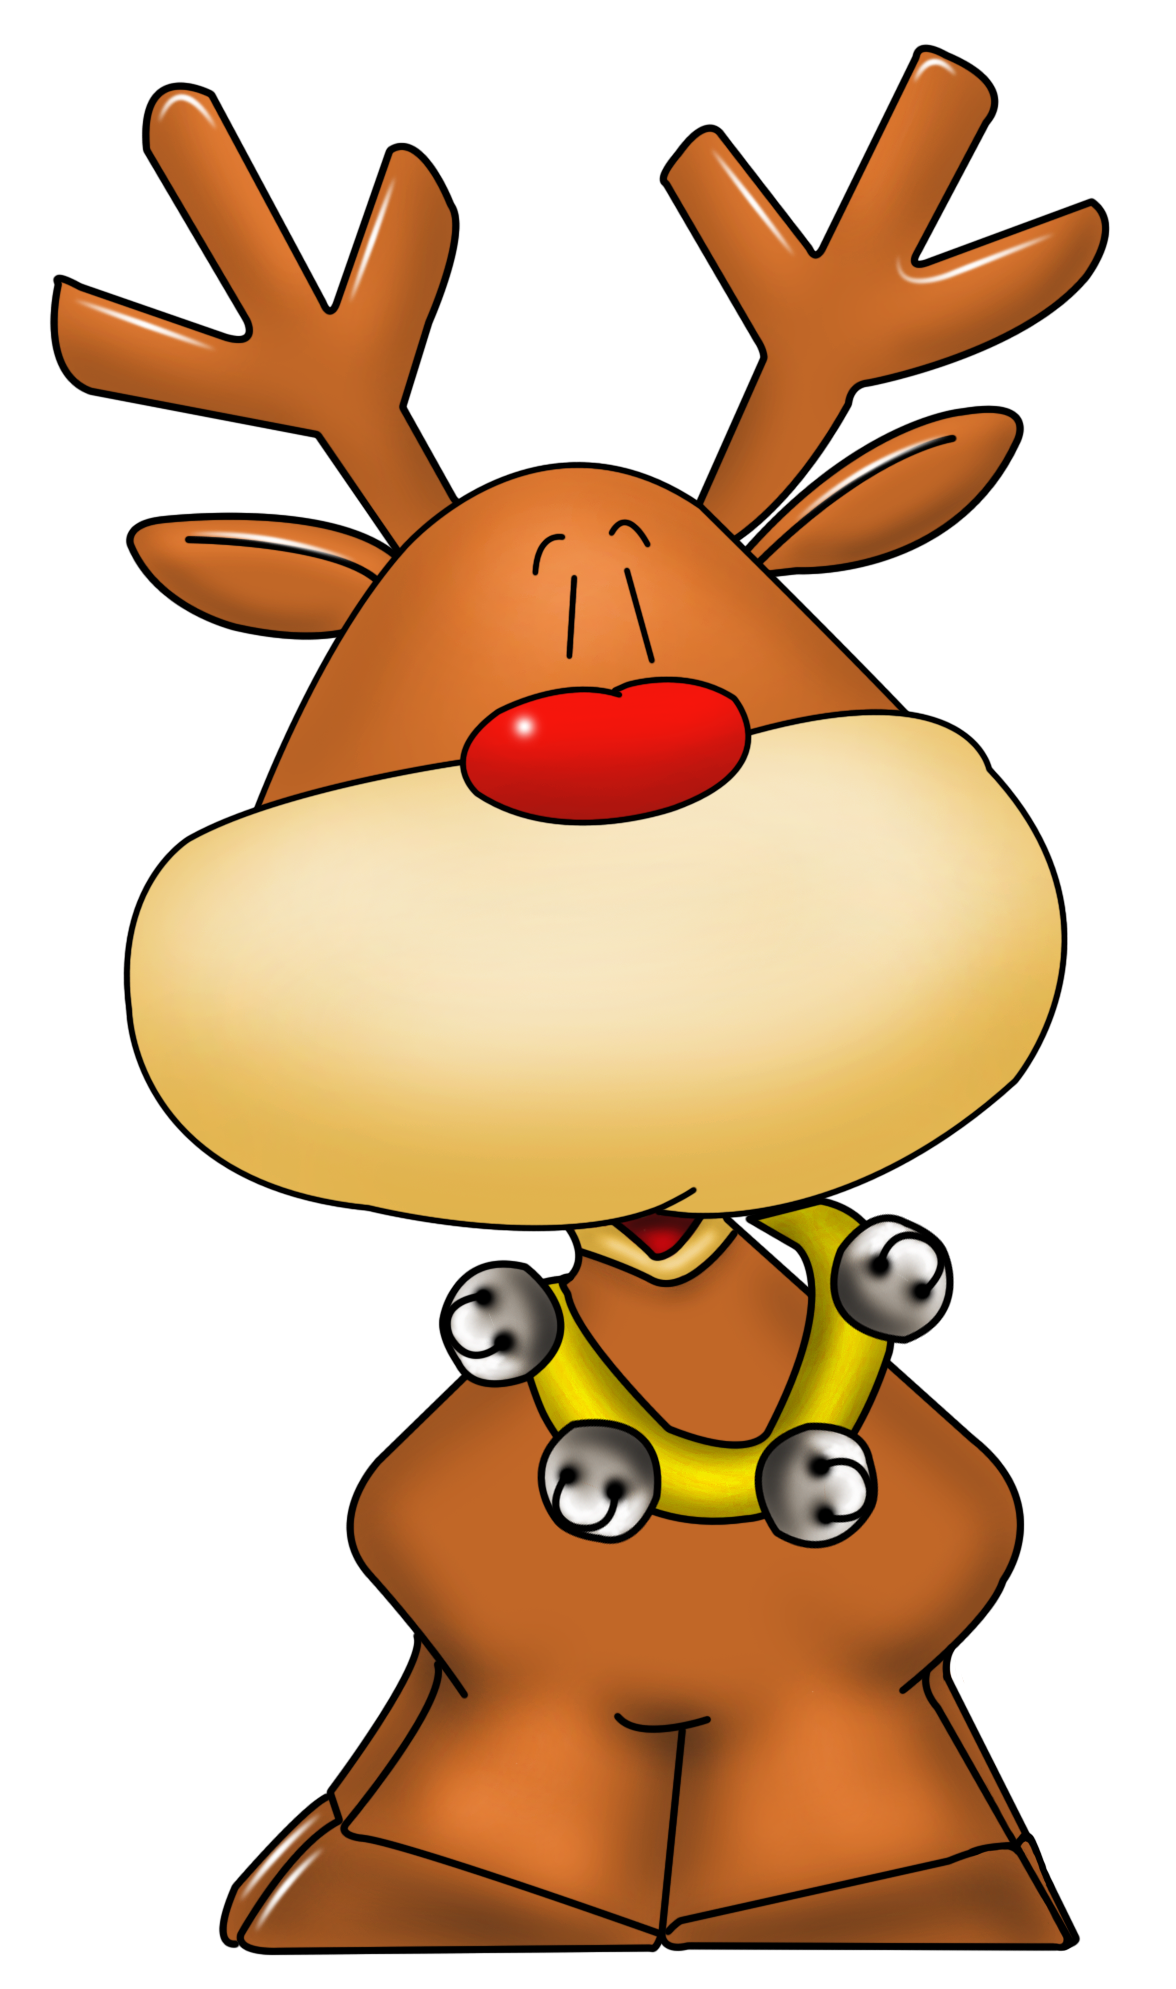 Raindeer drawing cartoon. Rudolph png picture christmas